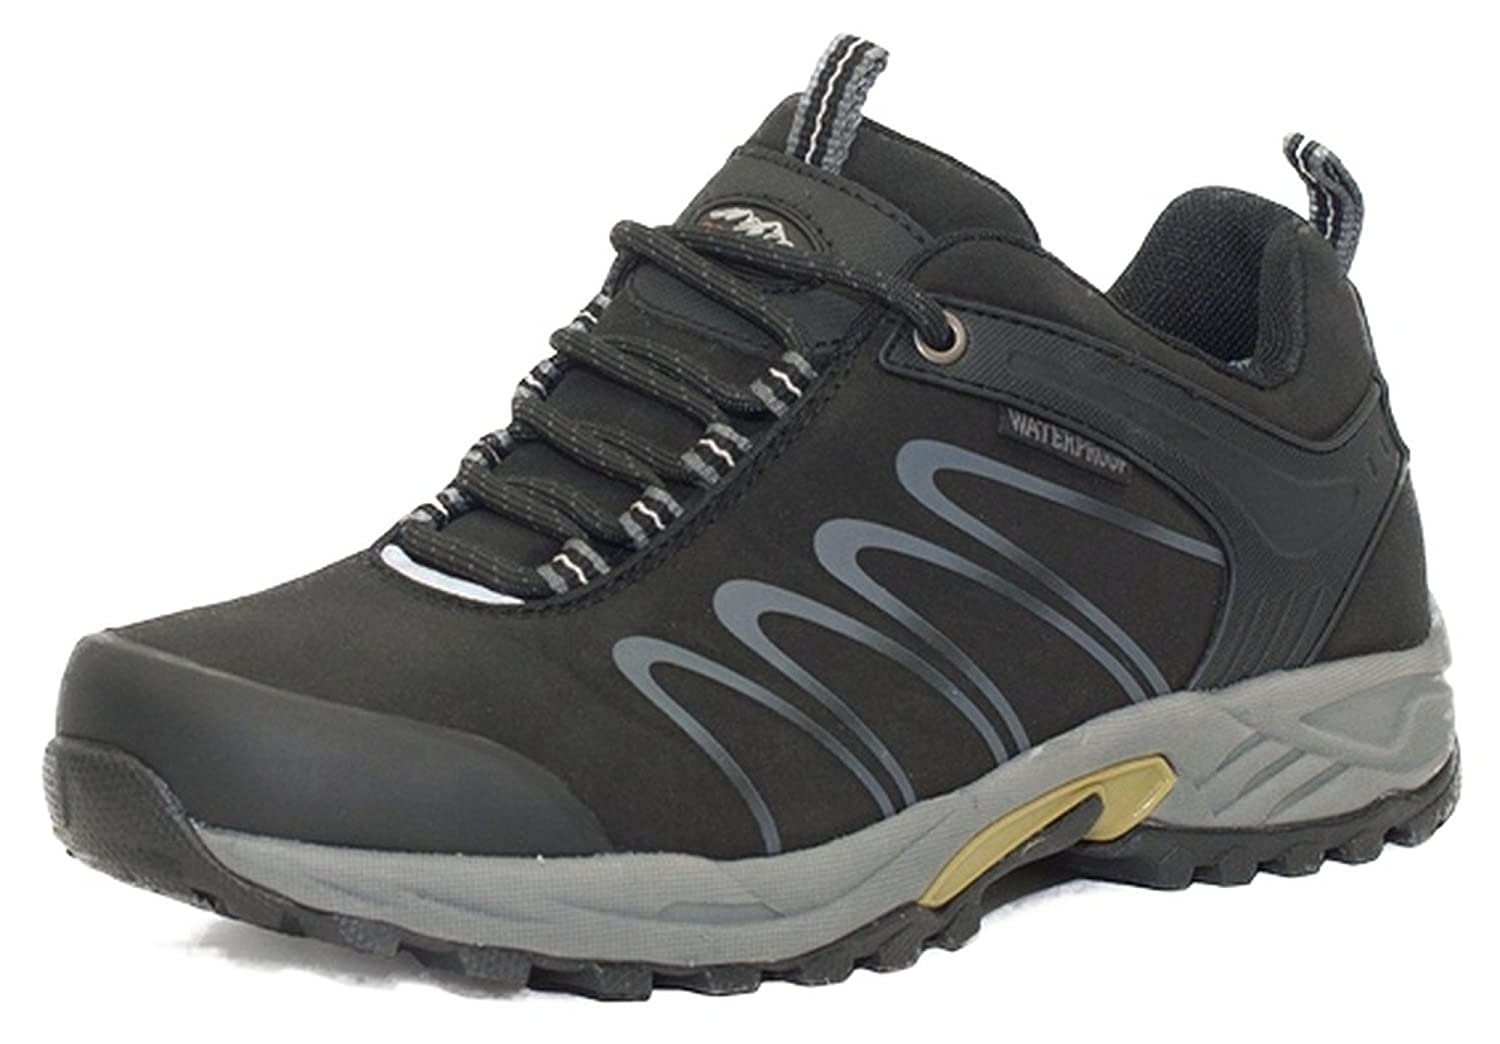 ALPINECROWN Trekkingschuhe Wanderschuhe Model Men Cross Trail, Schwarz, EU 45